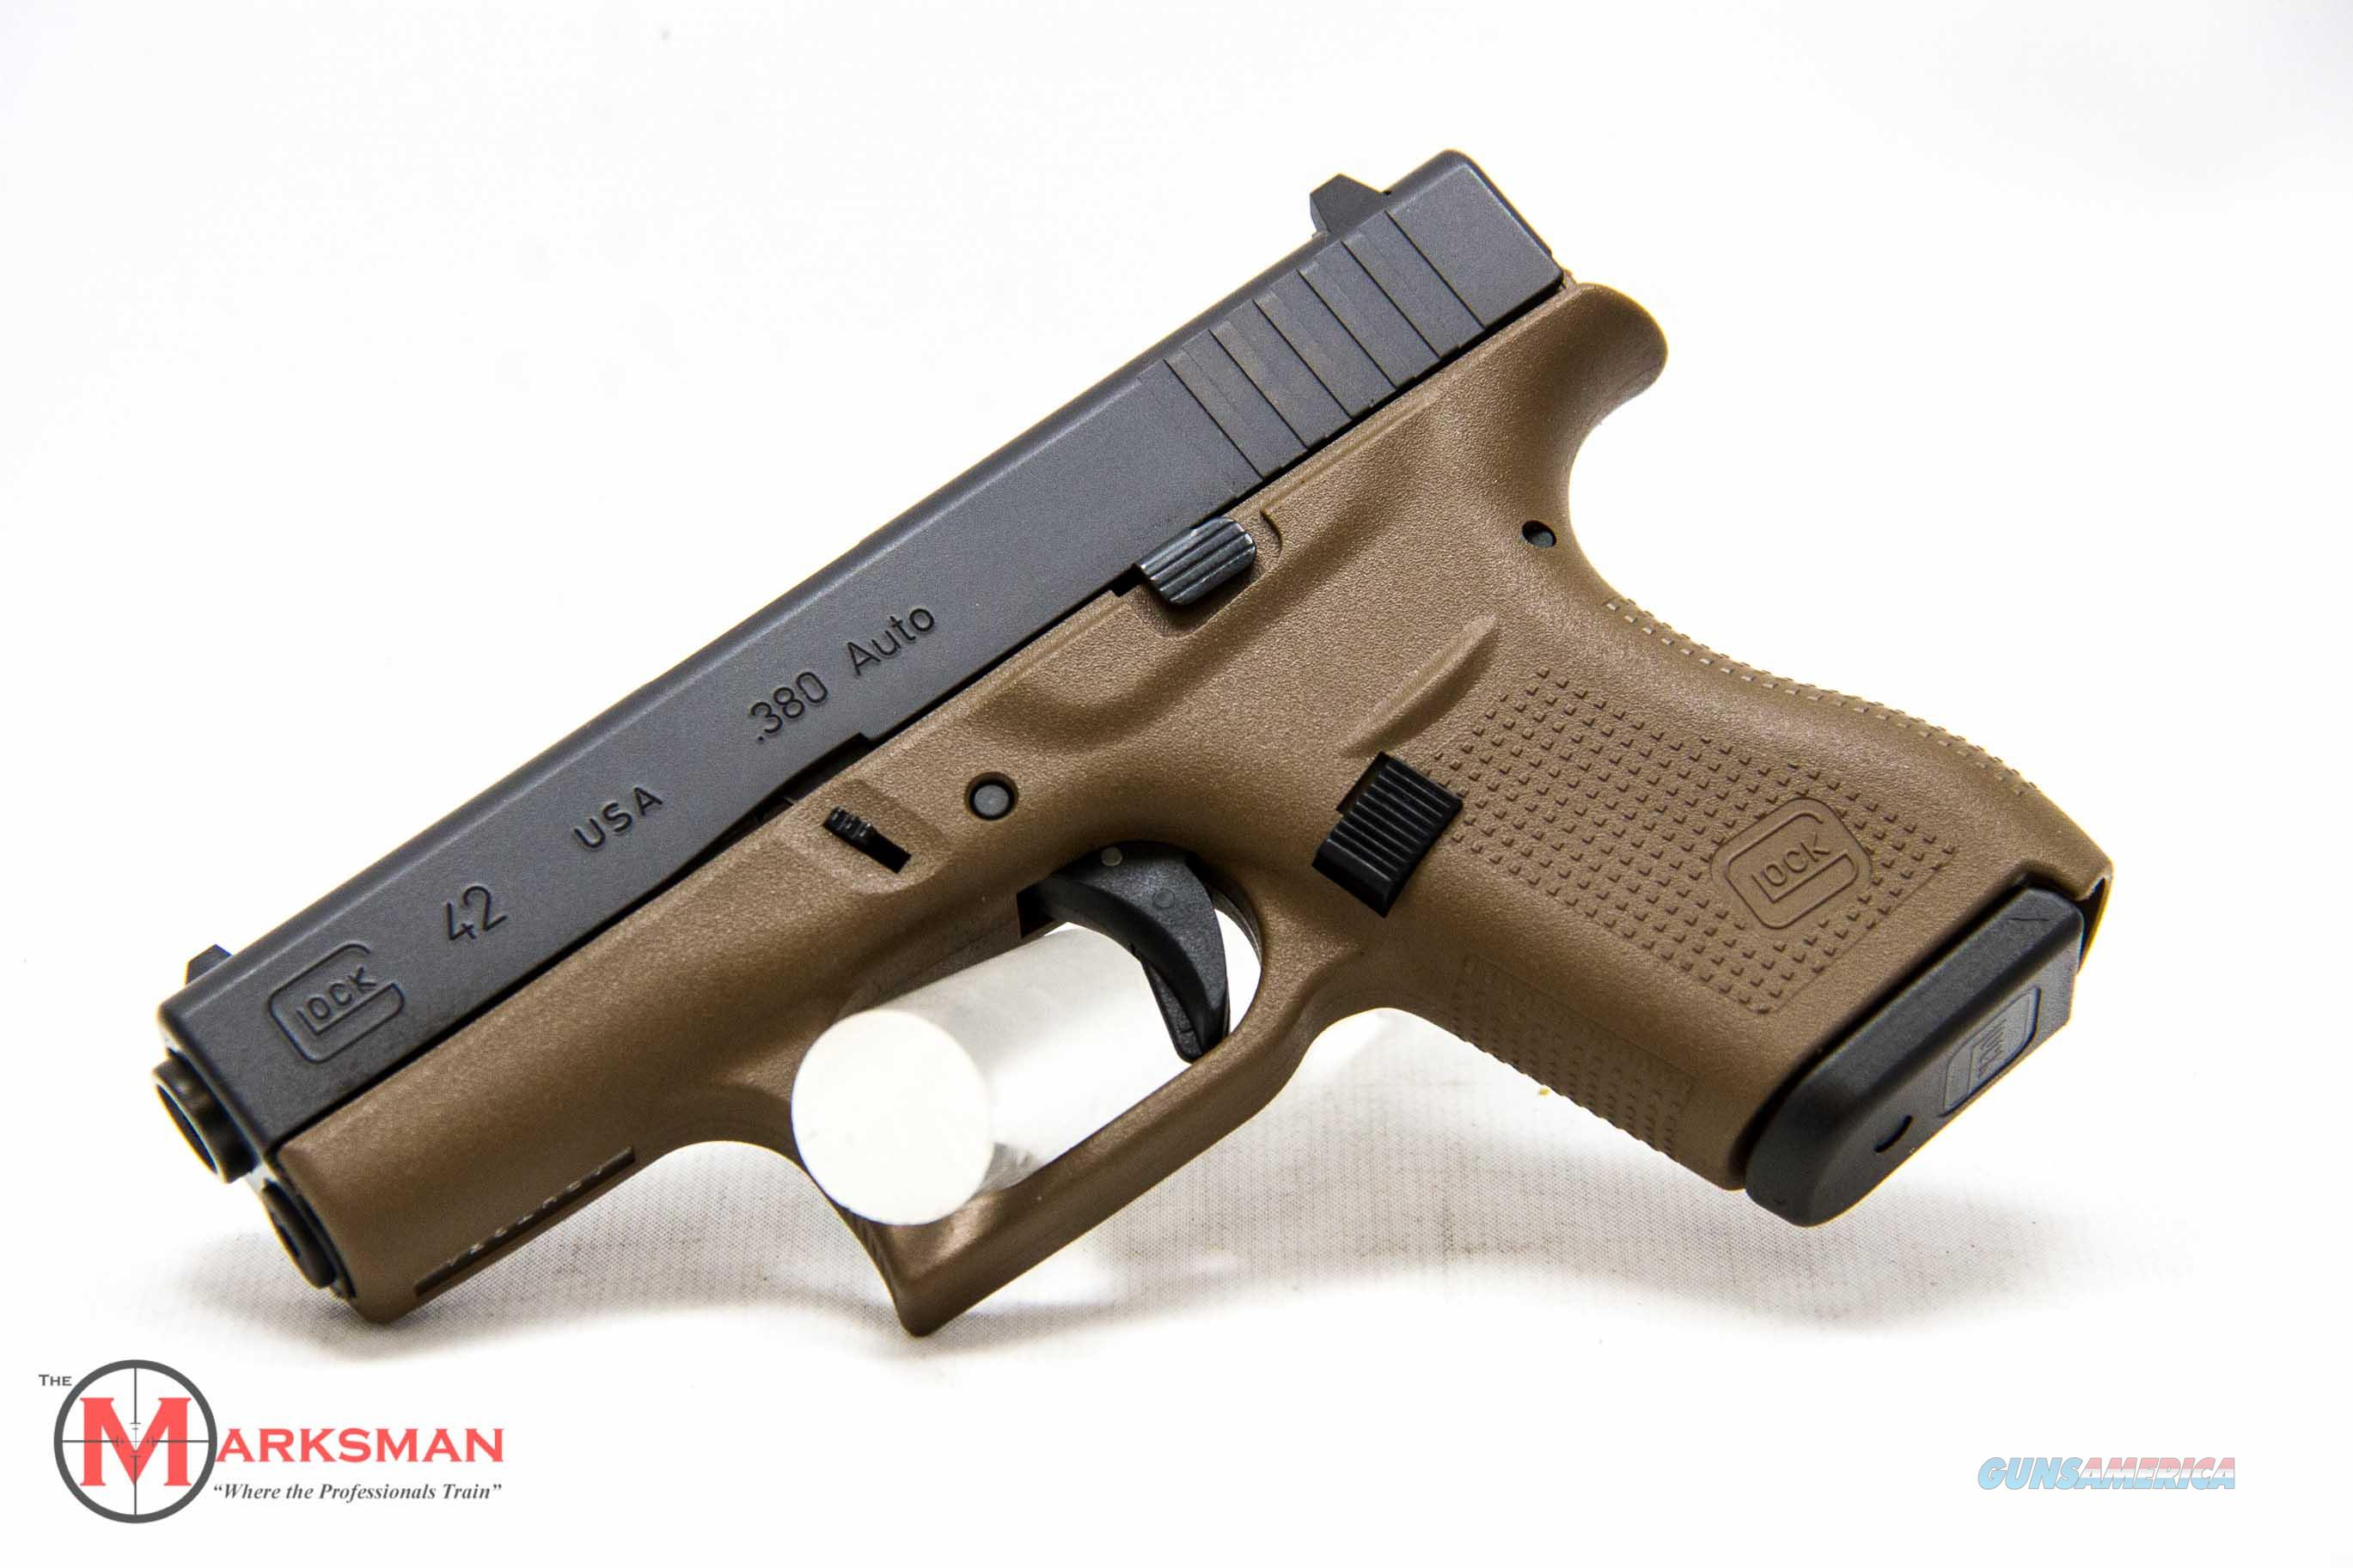 Glock 42 .380 ACP Flat Dark Earth NEW Lipsey's Exclusive  Guns > Pistols > Glock Pistols > 42